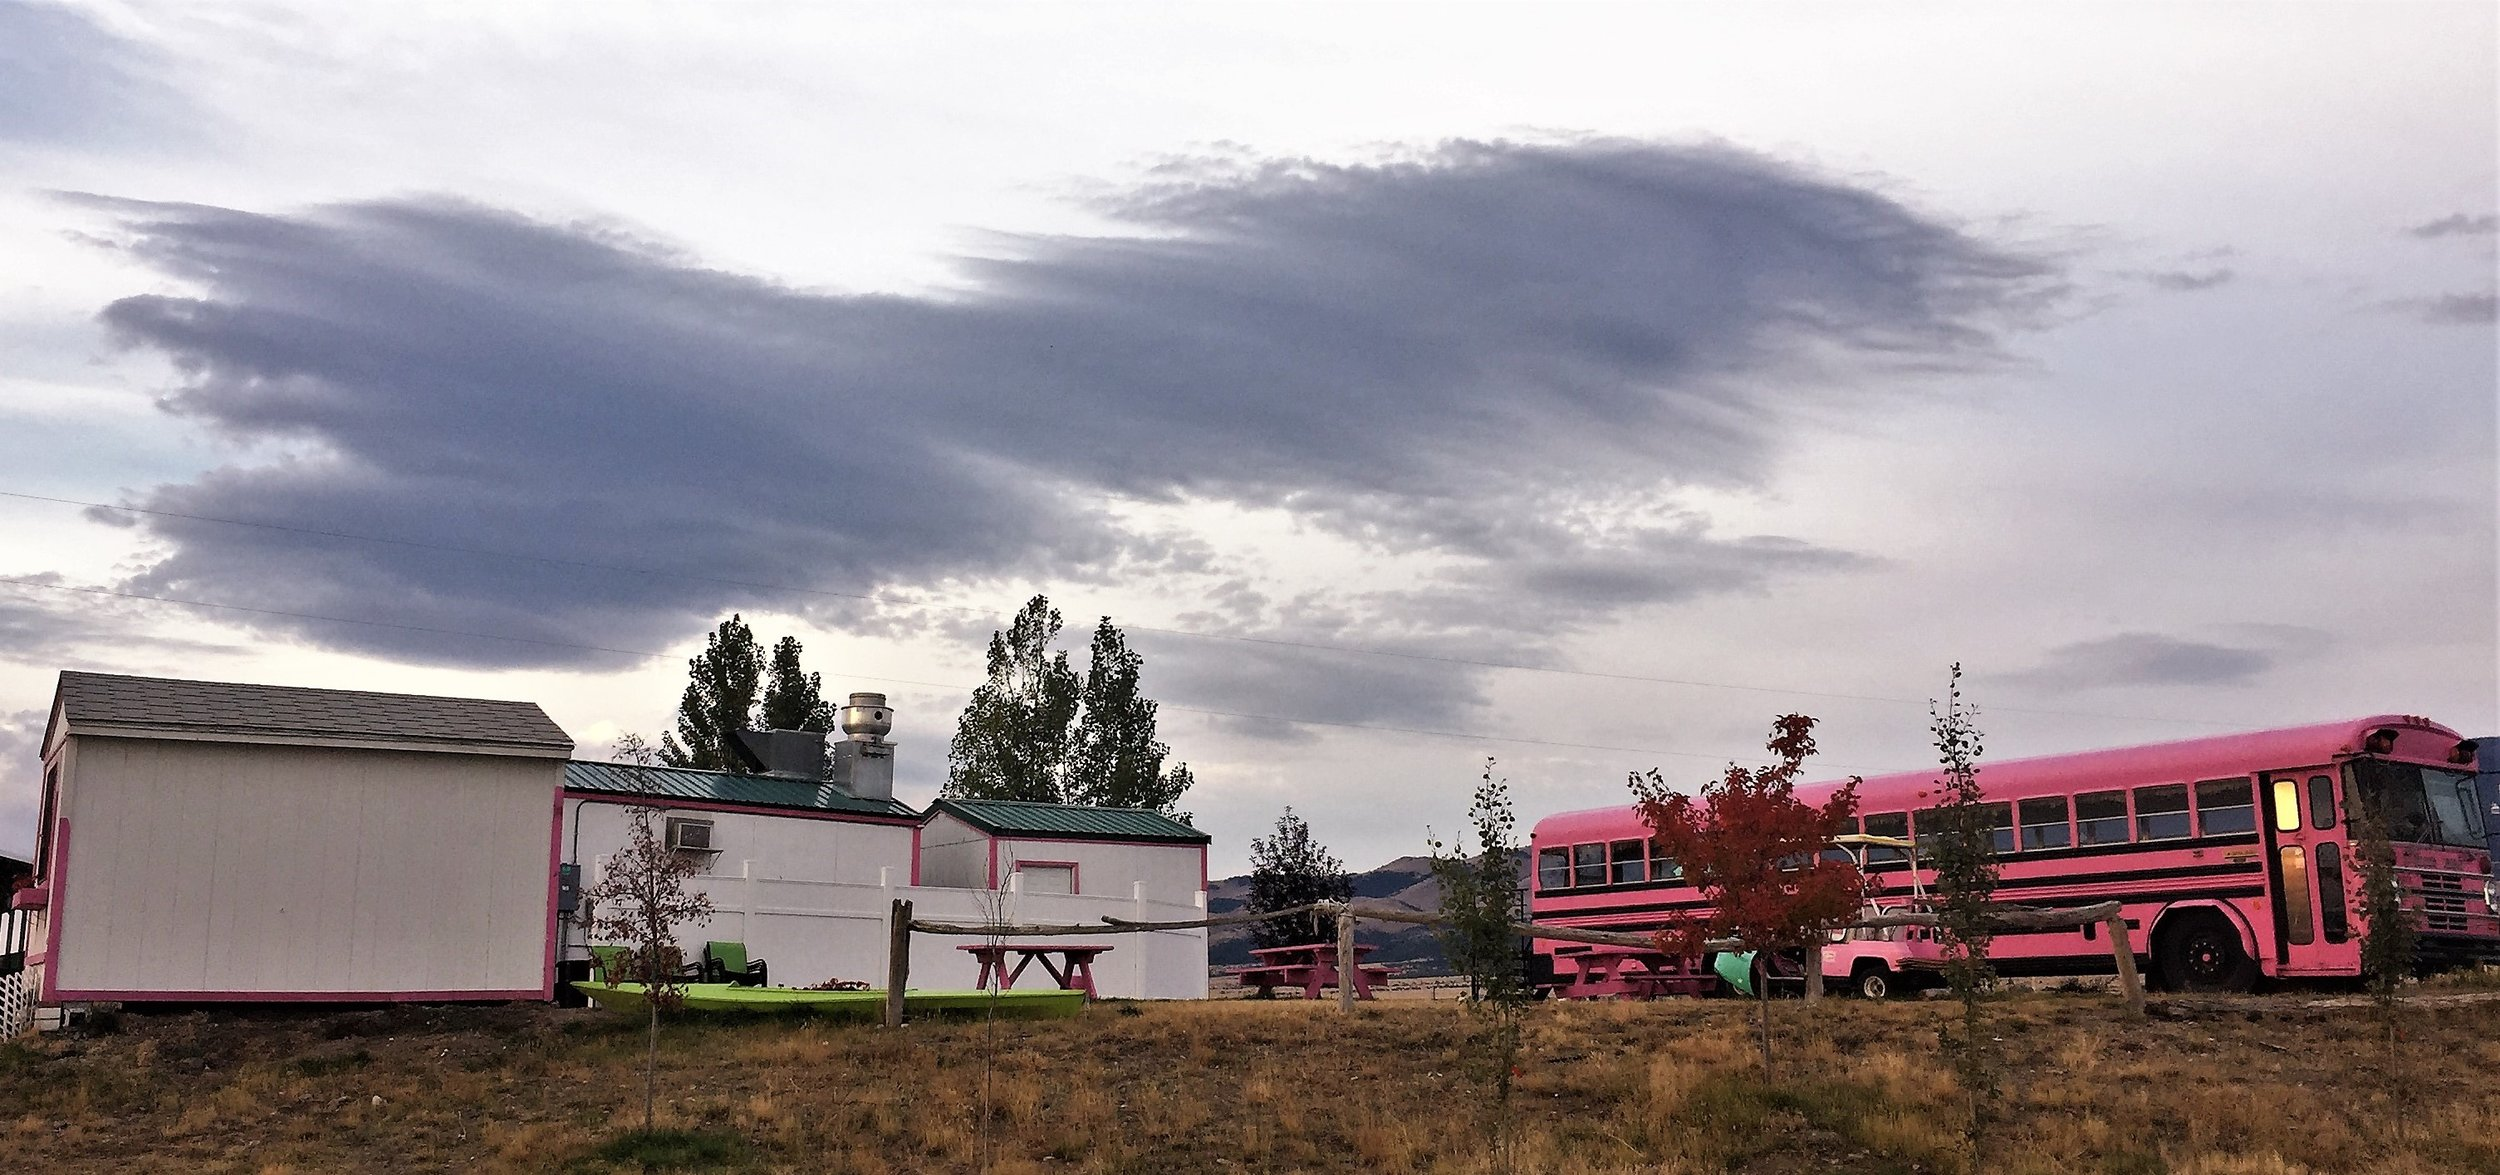 Flamingo Bus-Mount Townsend KOA